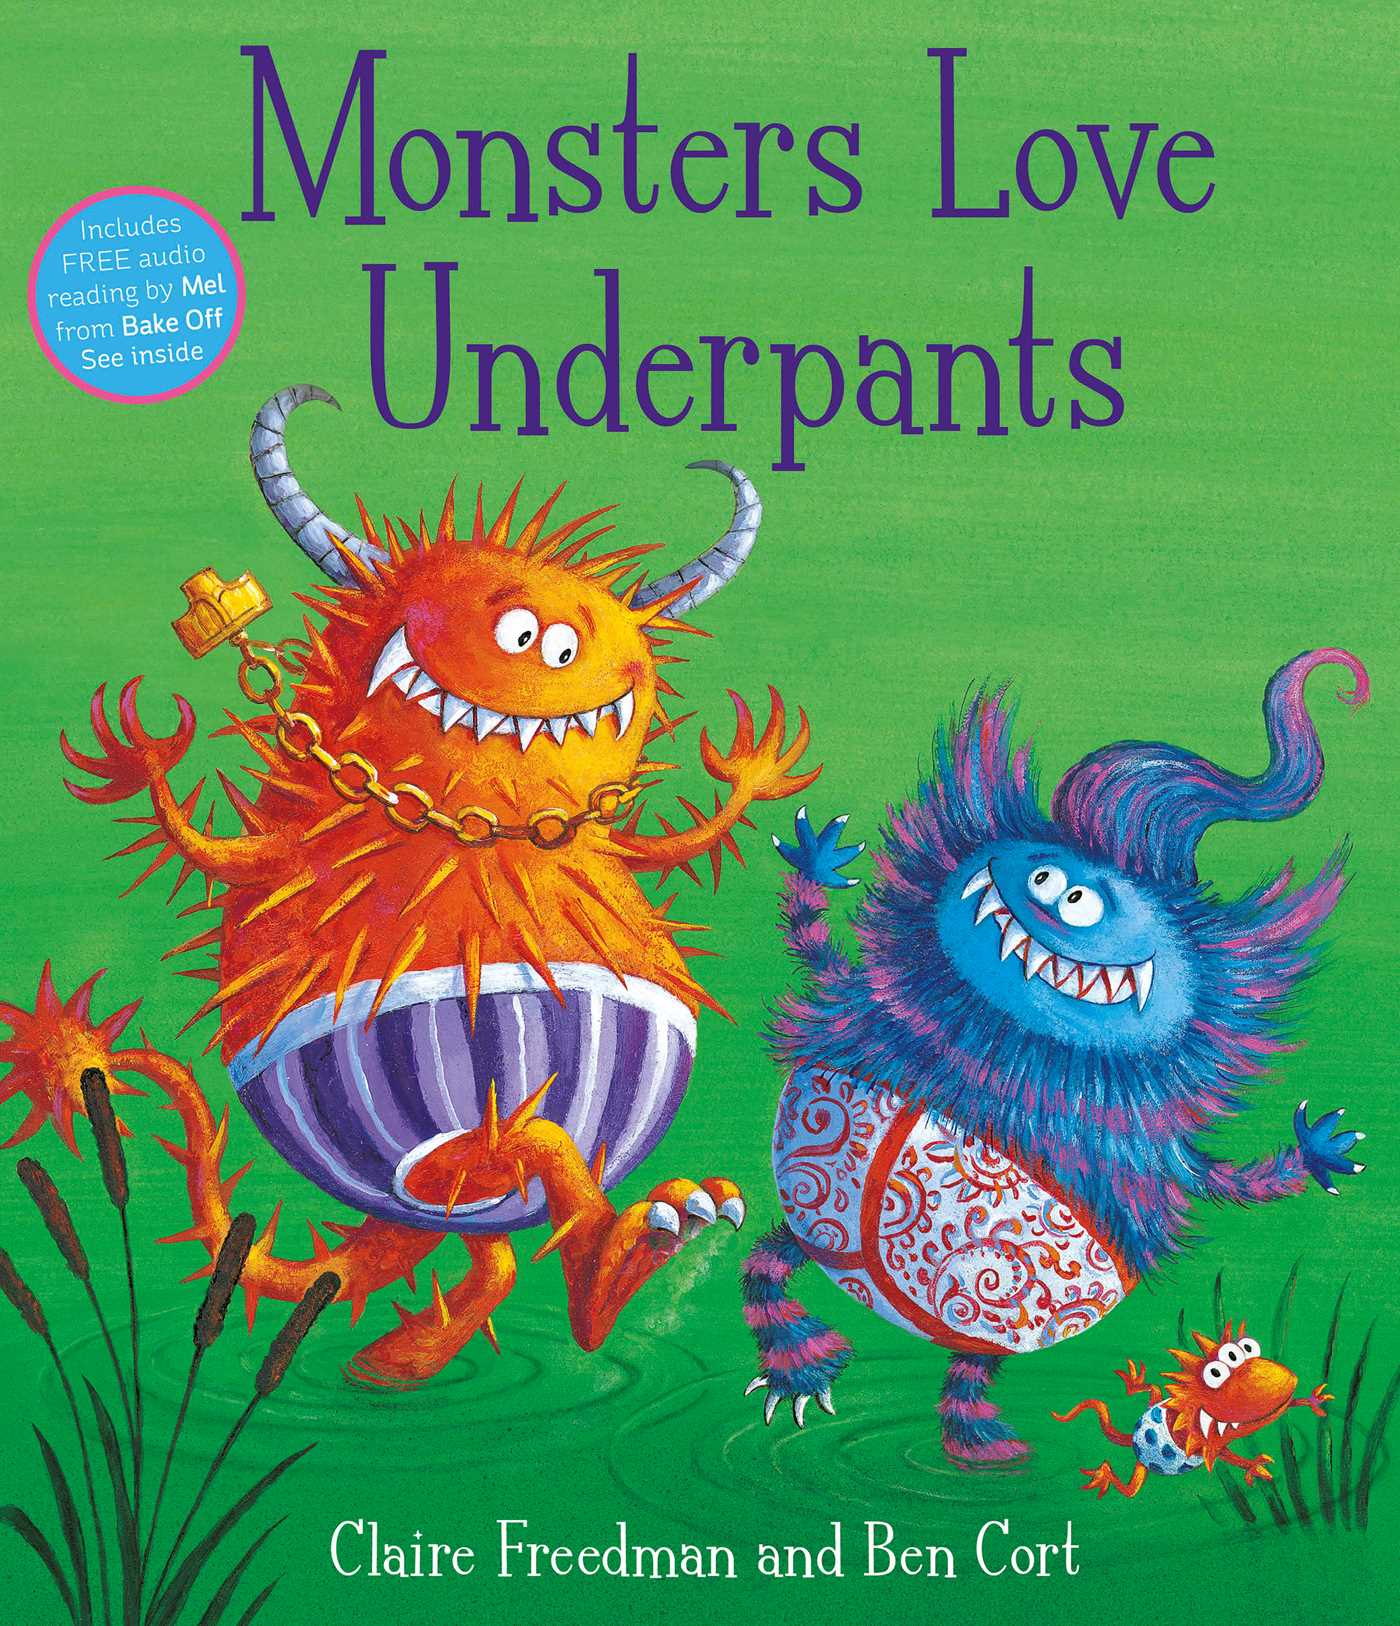 Amazon Uk Books Monsters Love Underpants Book By Claire Freedman Ben Cort